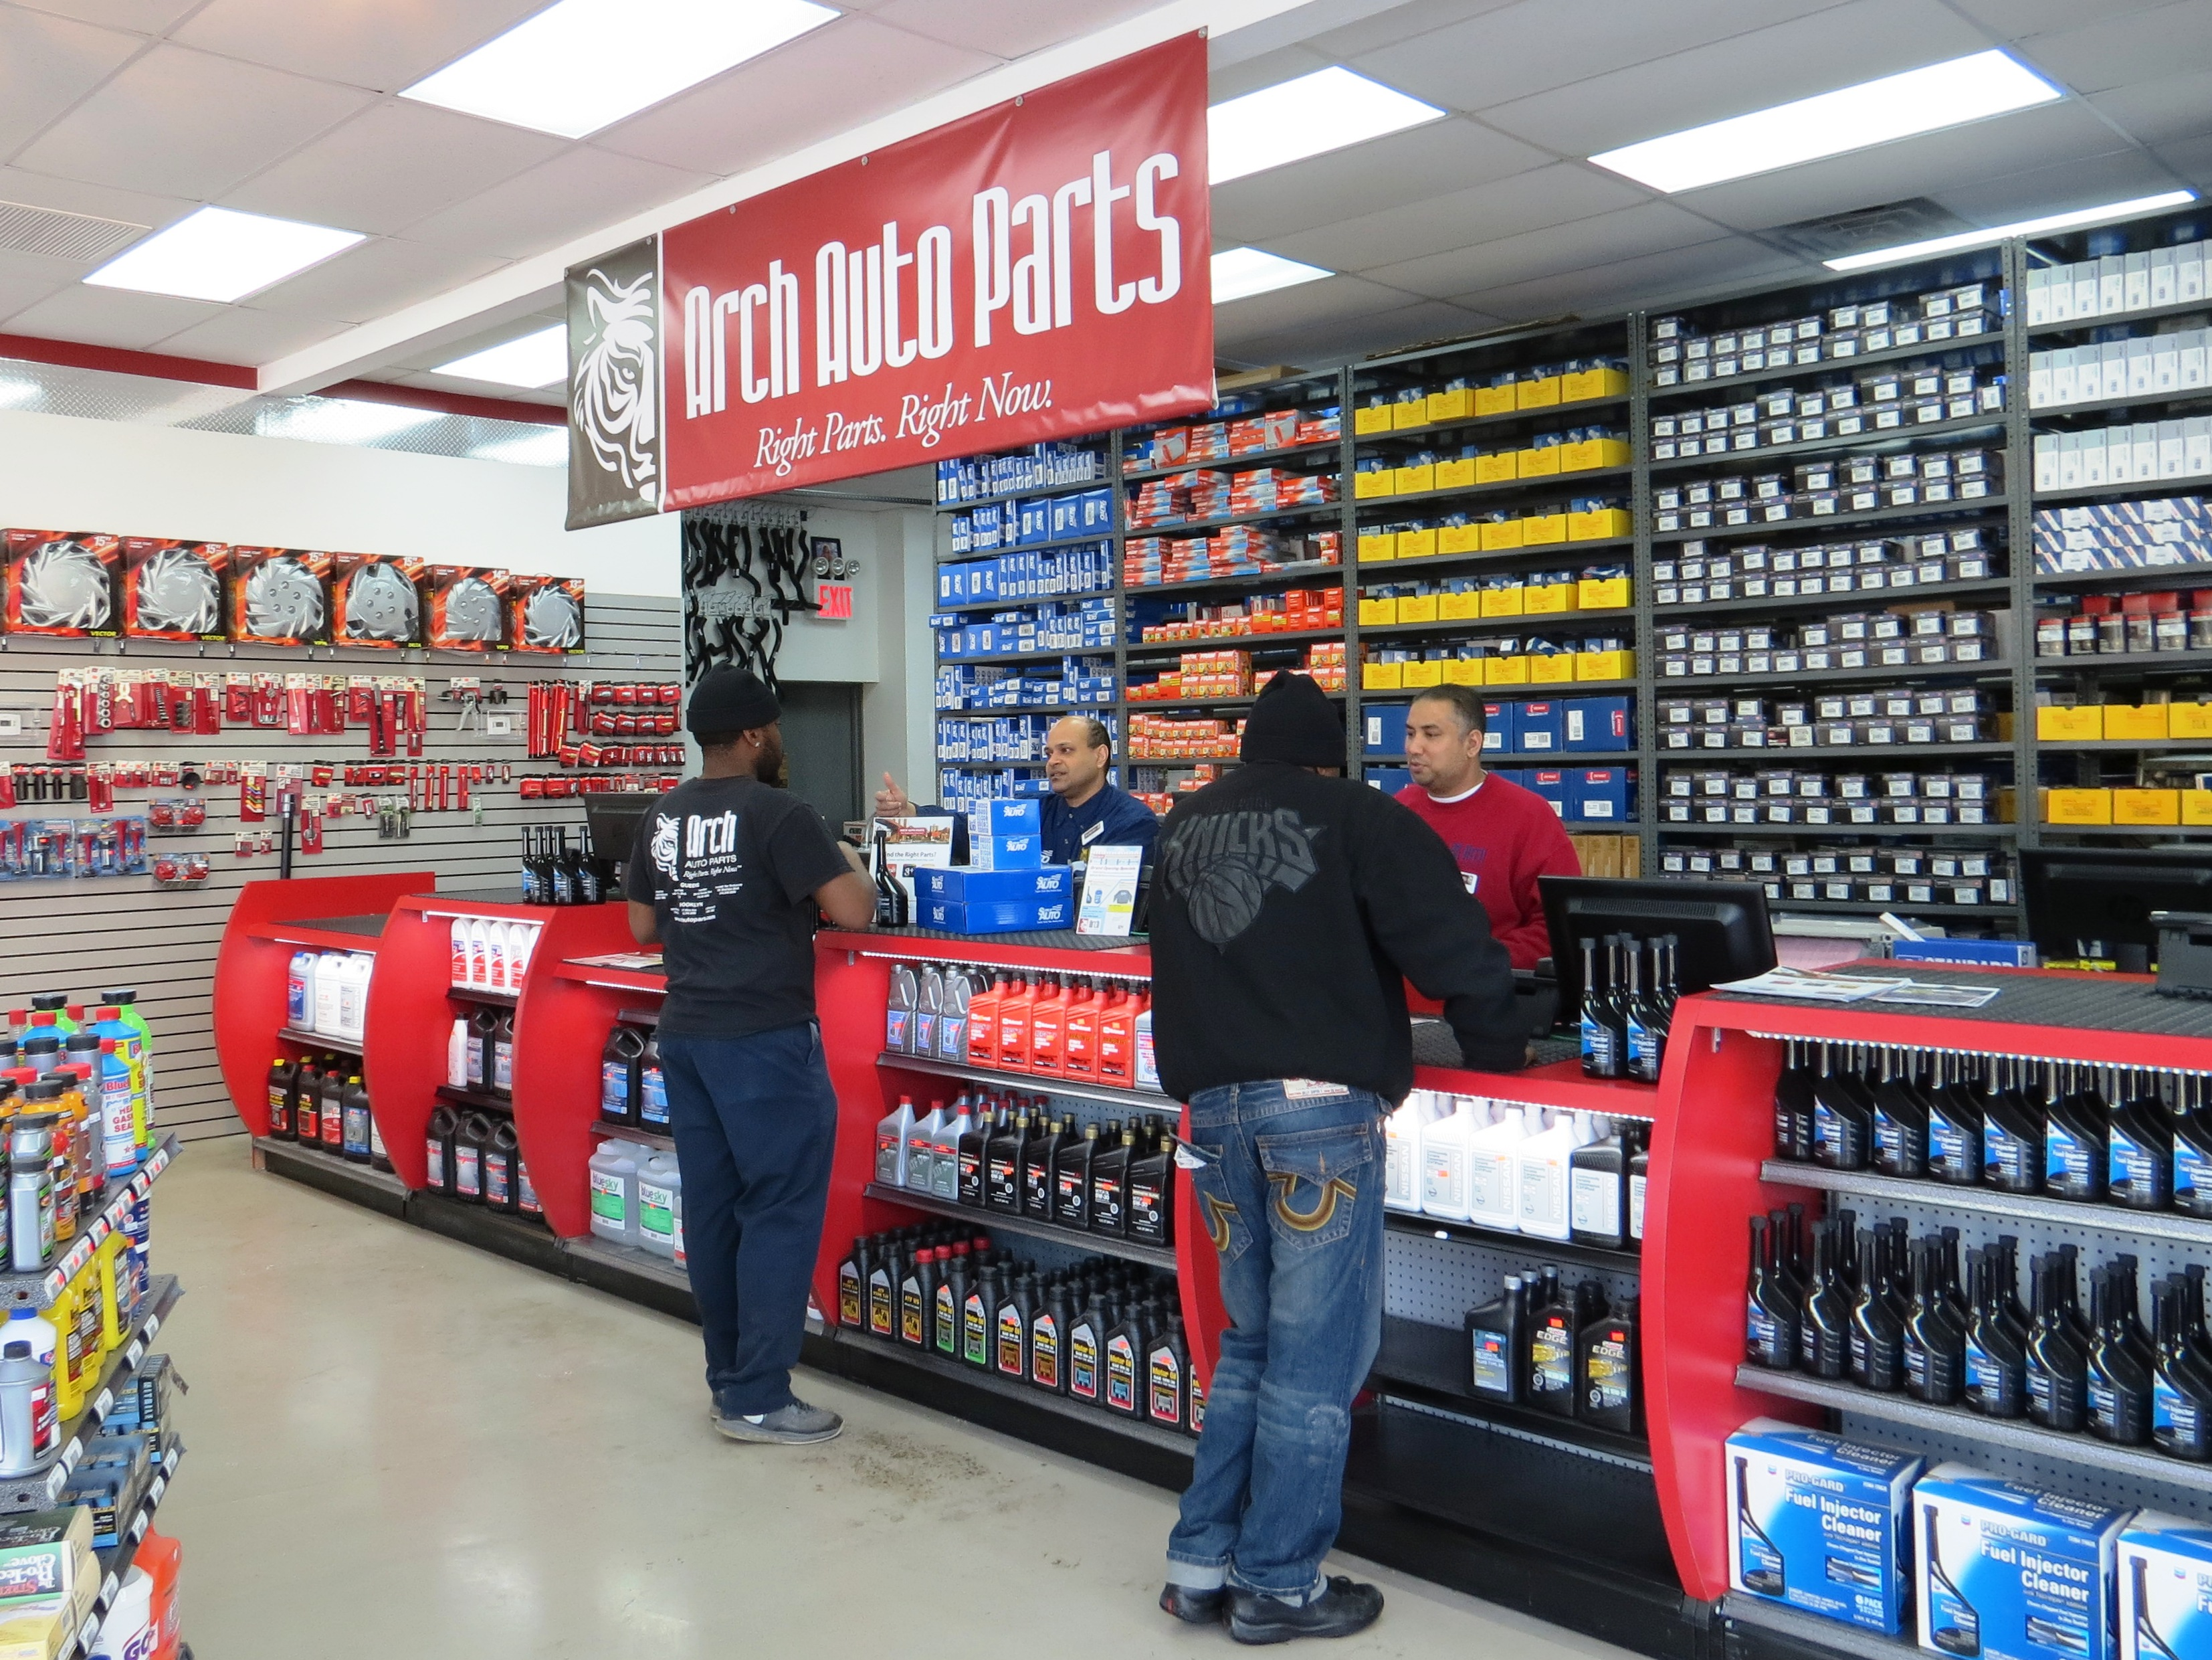 new arch auto parts store in queens ny provides exact parts needed for 95 percent of shoppers. Black Bedroom Furniture Sets. Home Design Ideas